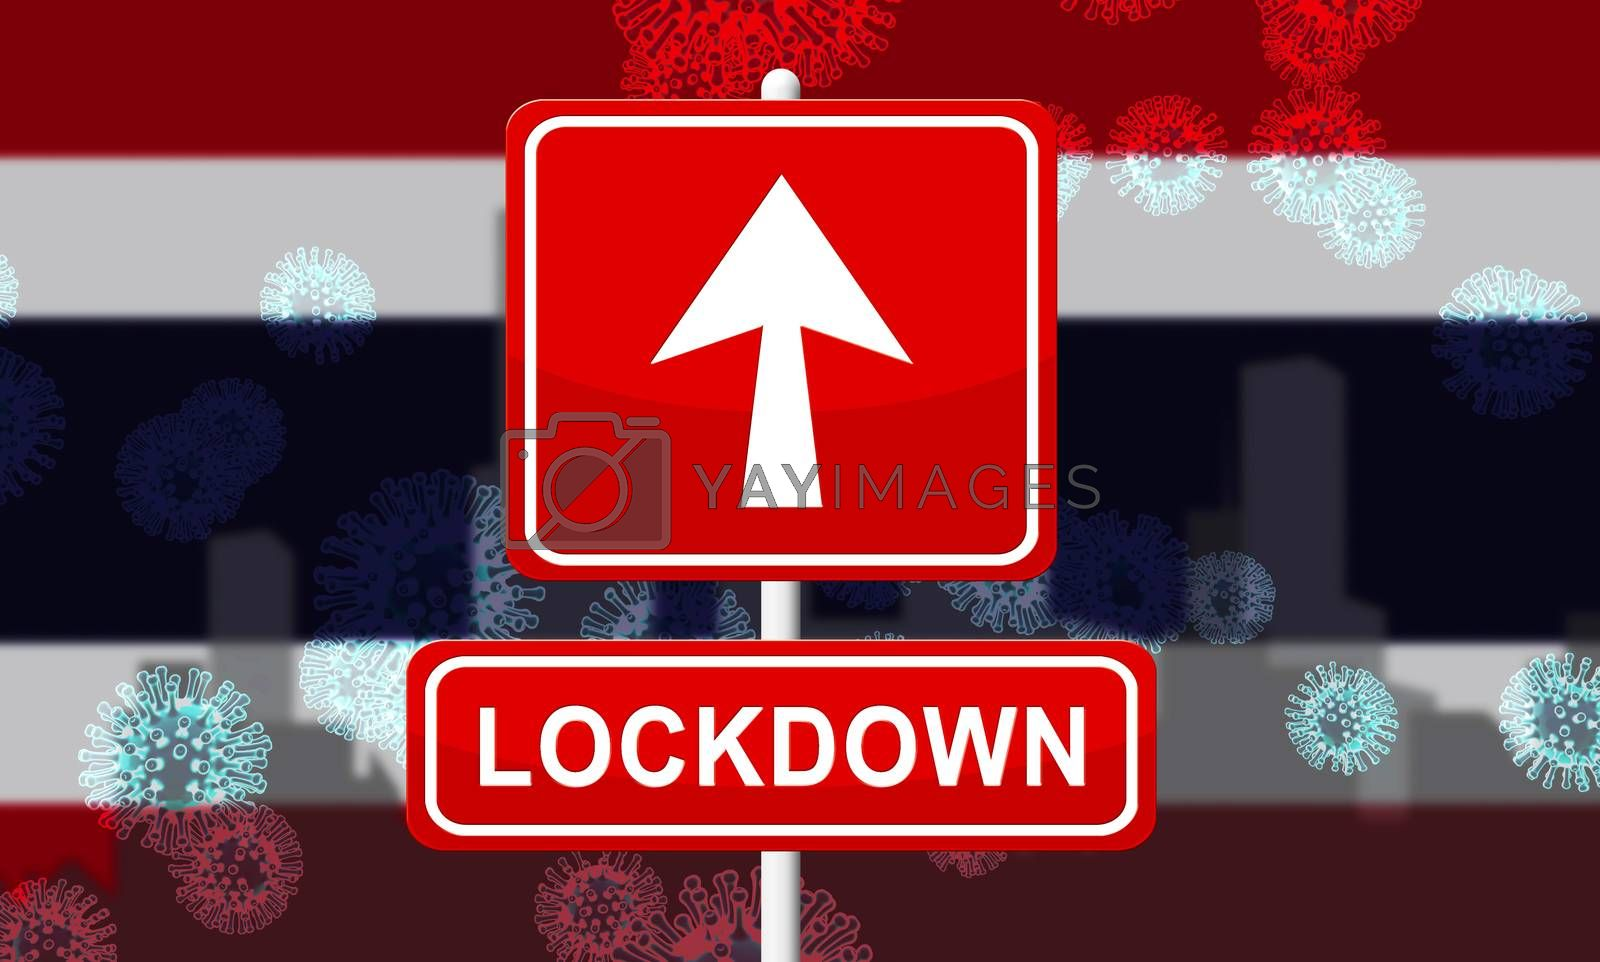 Thailand lockdown or shut down for ncov epidemic. Covid 19 Thai precaution to isolate disease infection - 3d Illustration